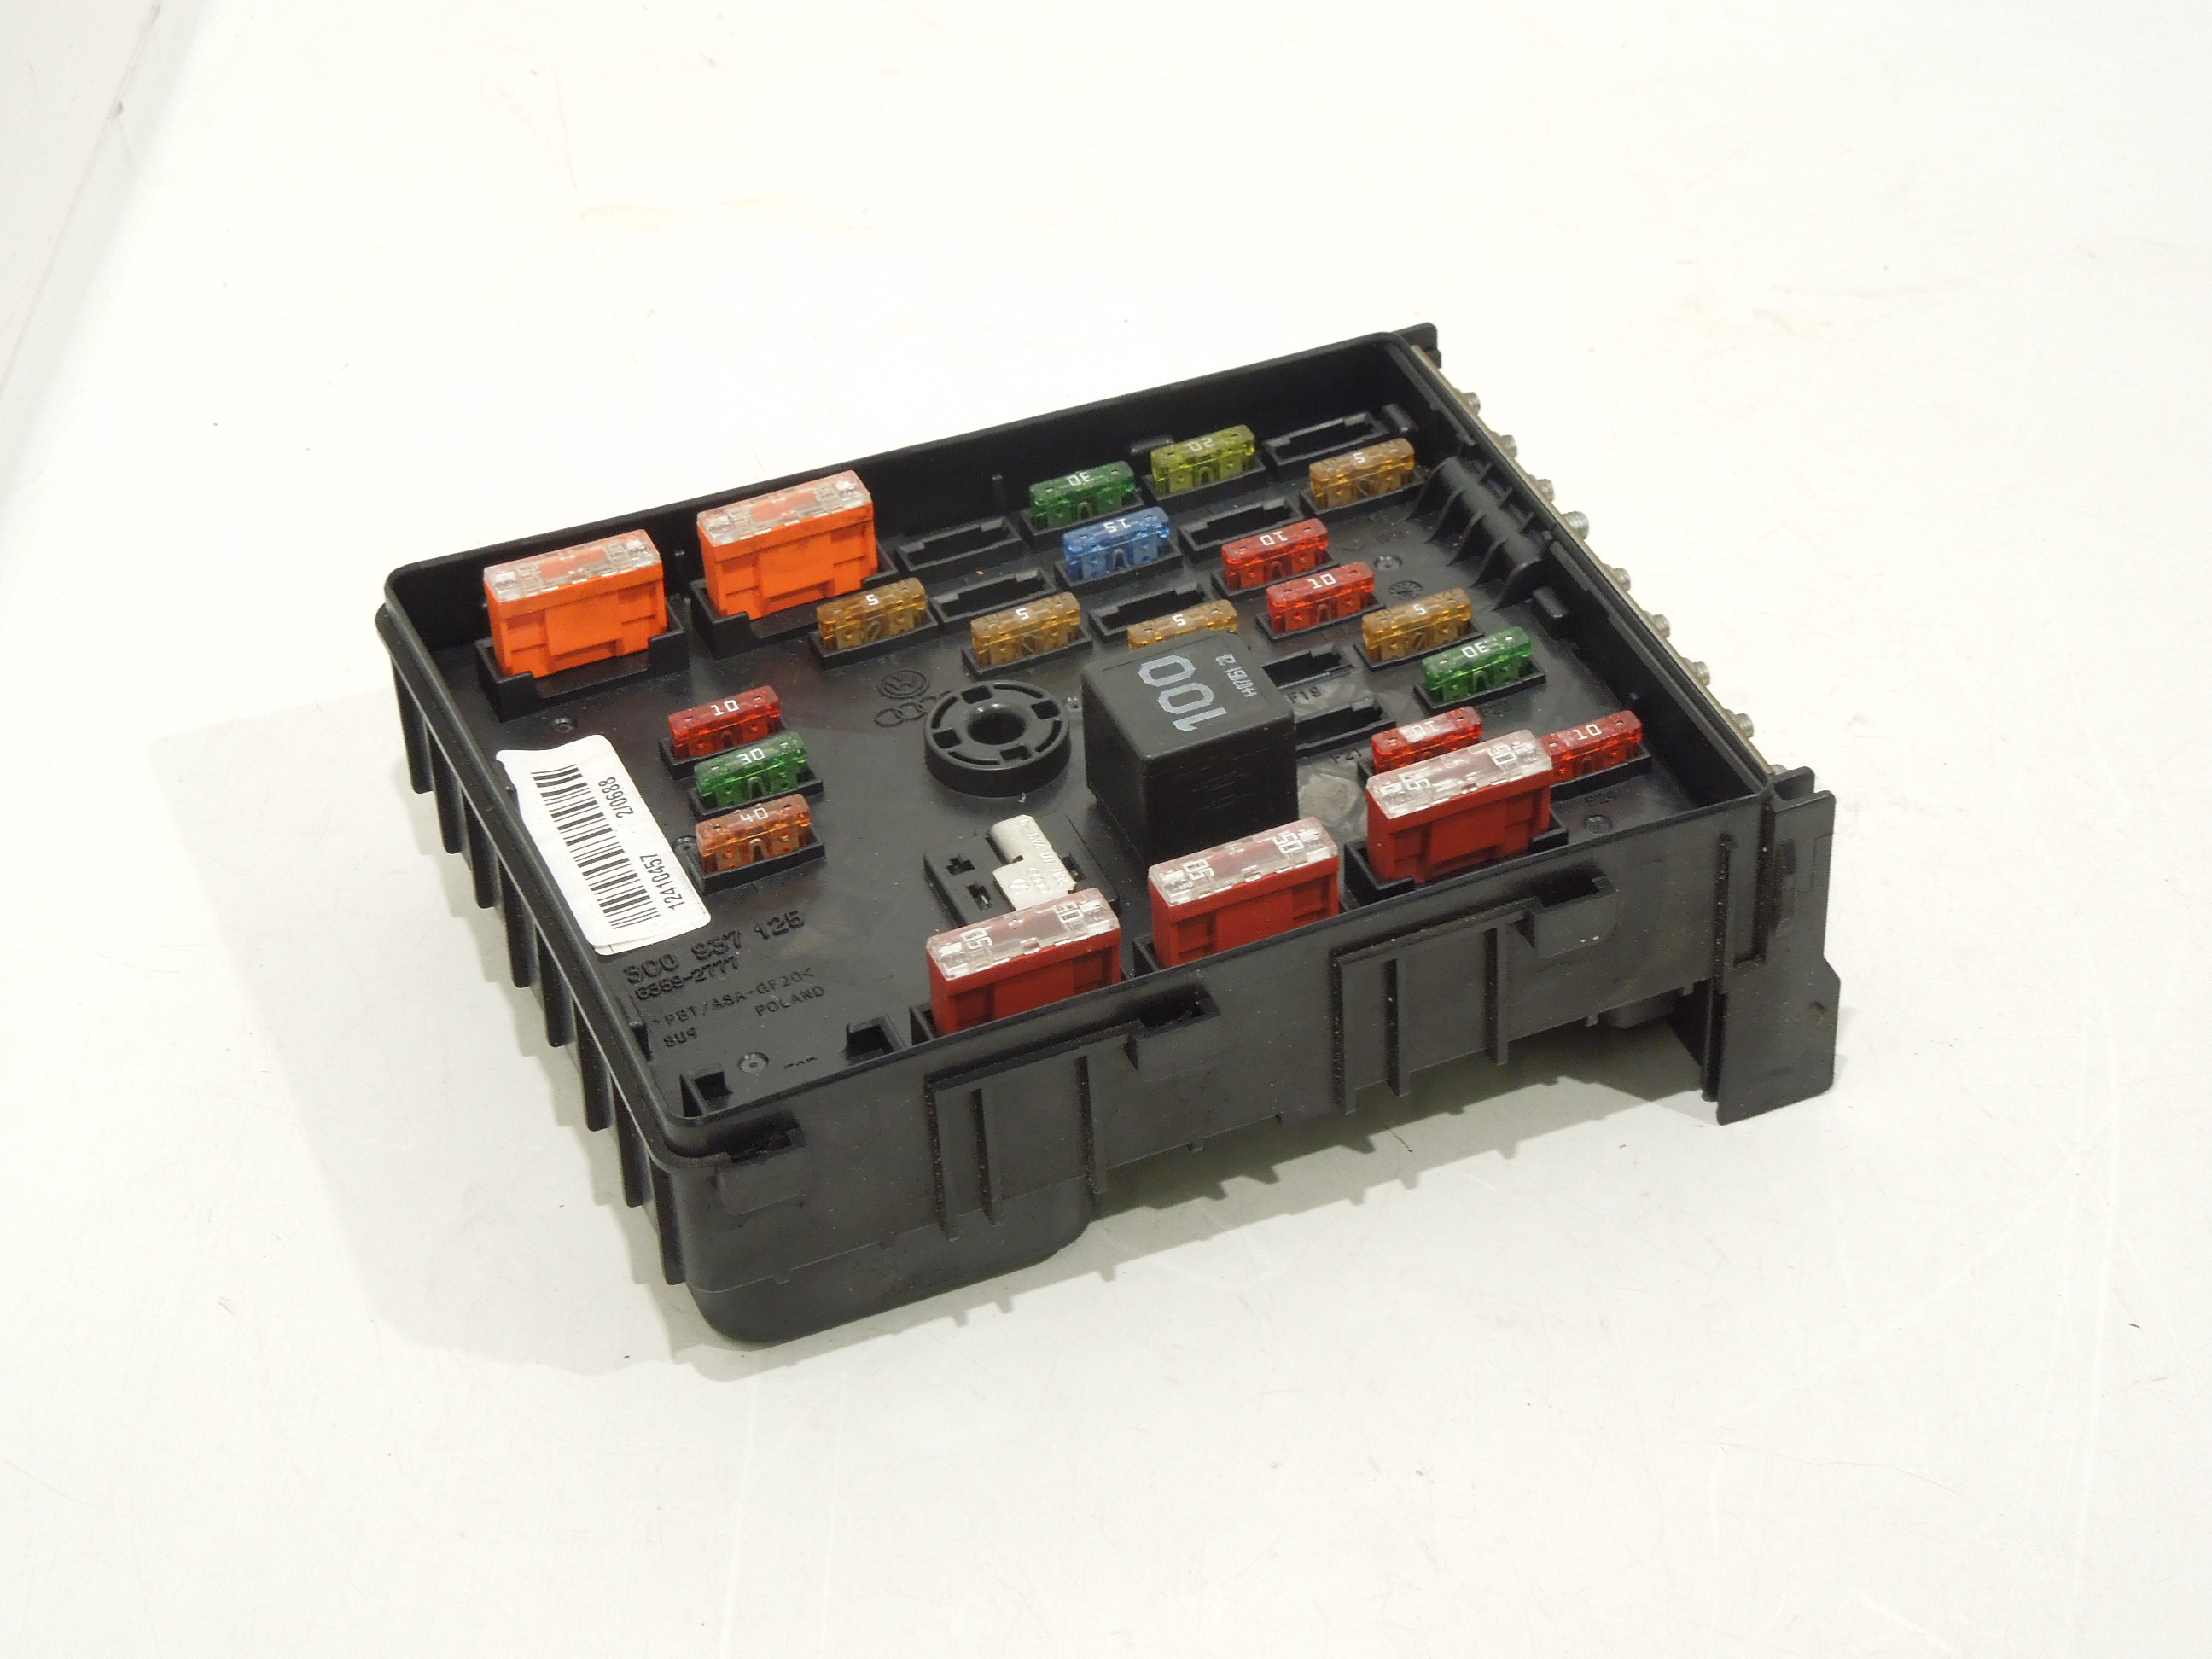 vw passat b6 main relay fuse power distribution box 3c0937125 ebay Car Glove Box image is loading vw passat b6 main relay fuse power distribution